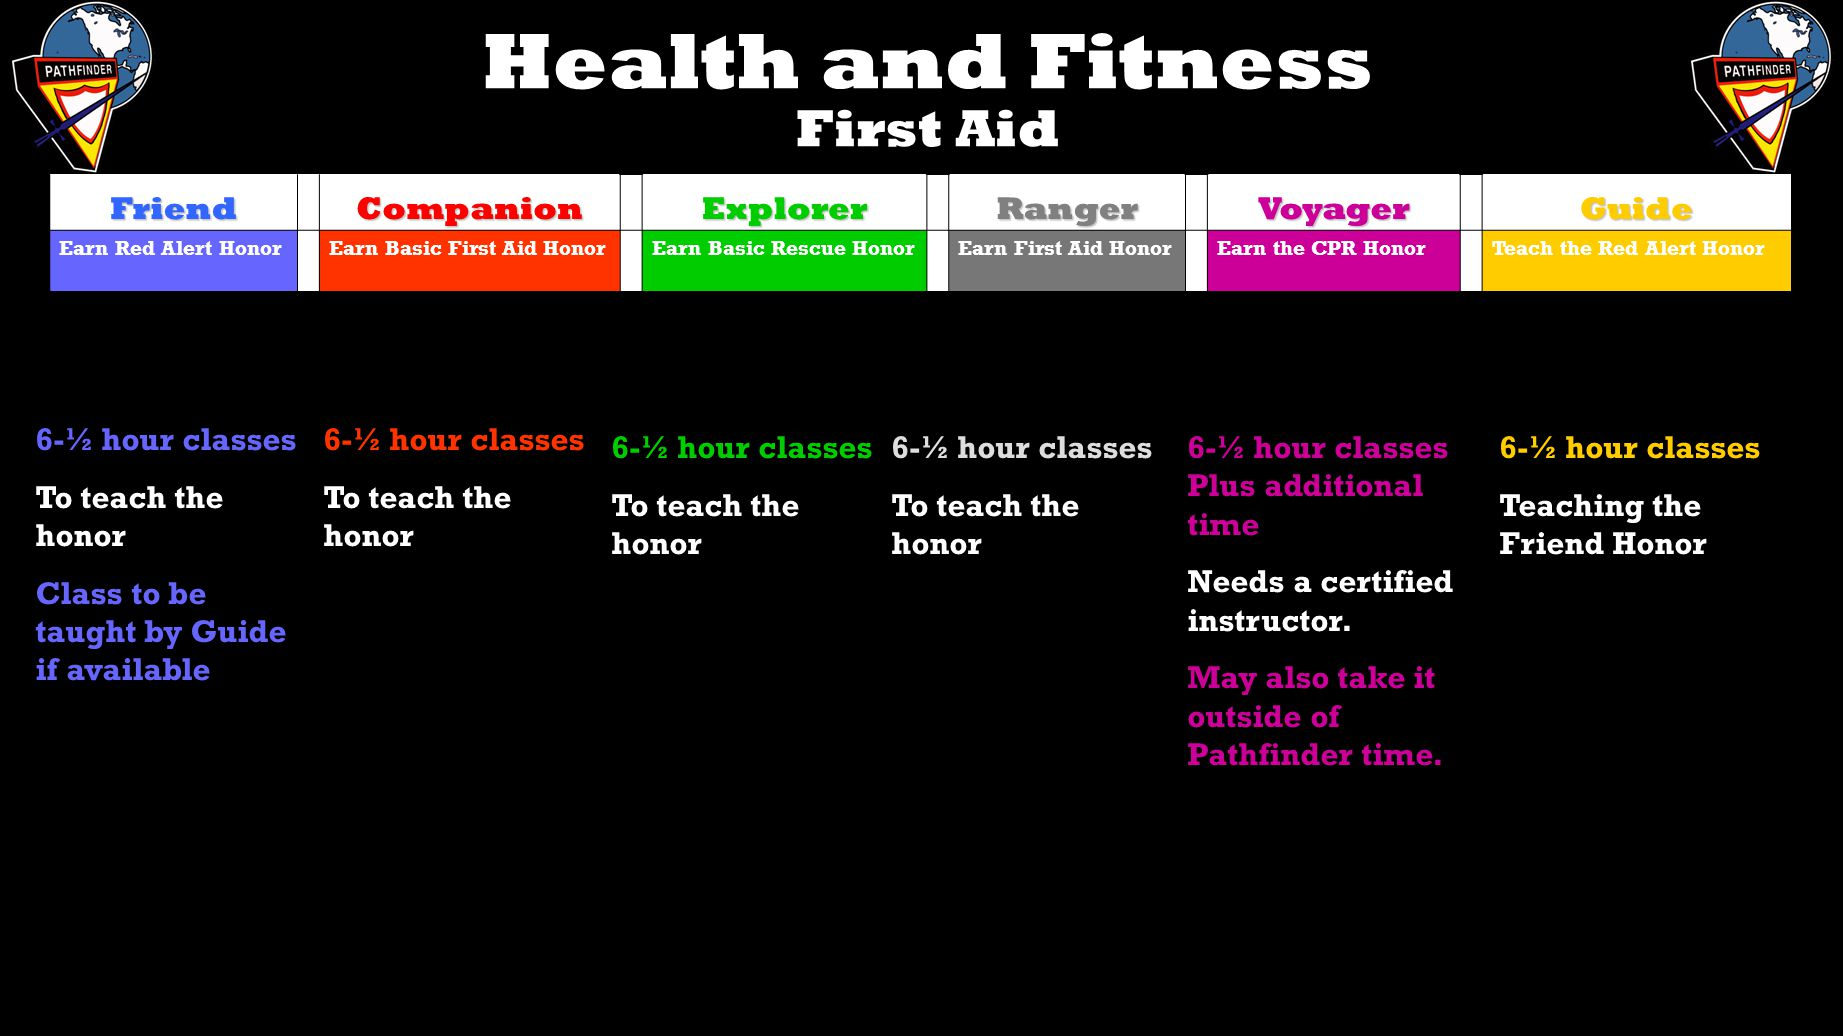 Health and Fitness First Aid